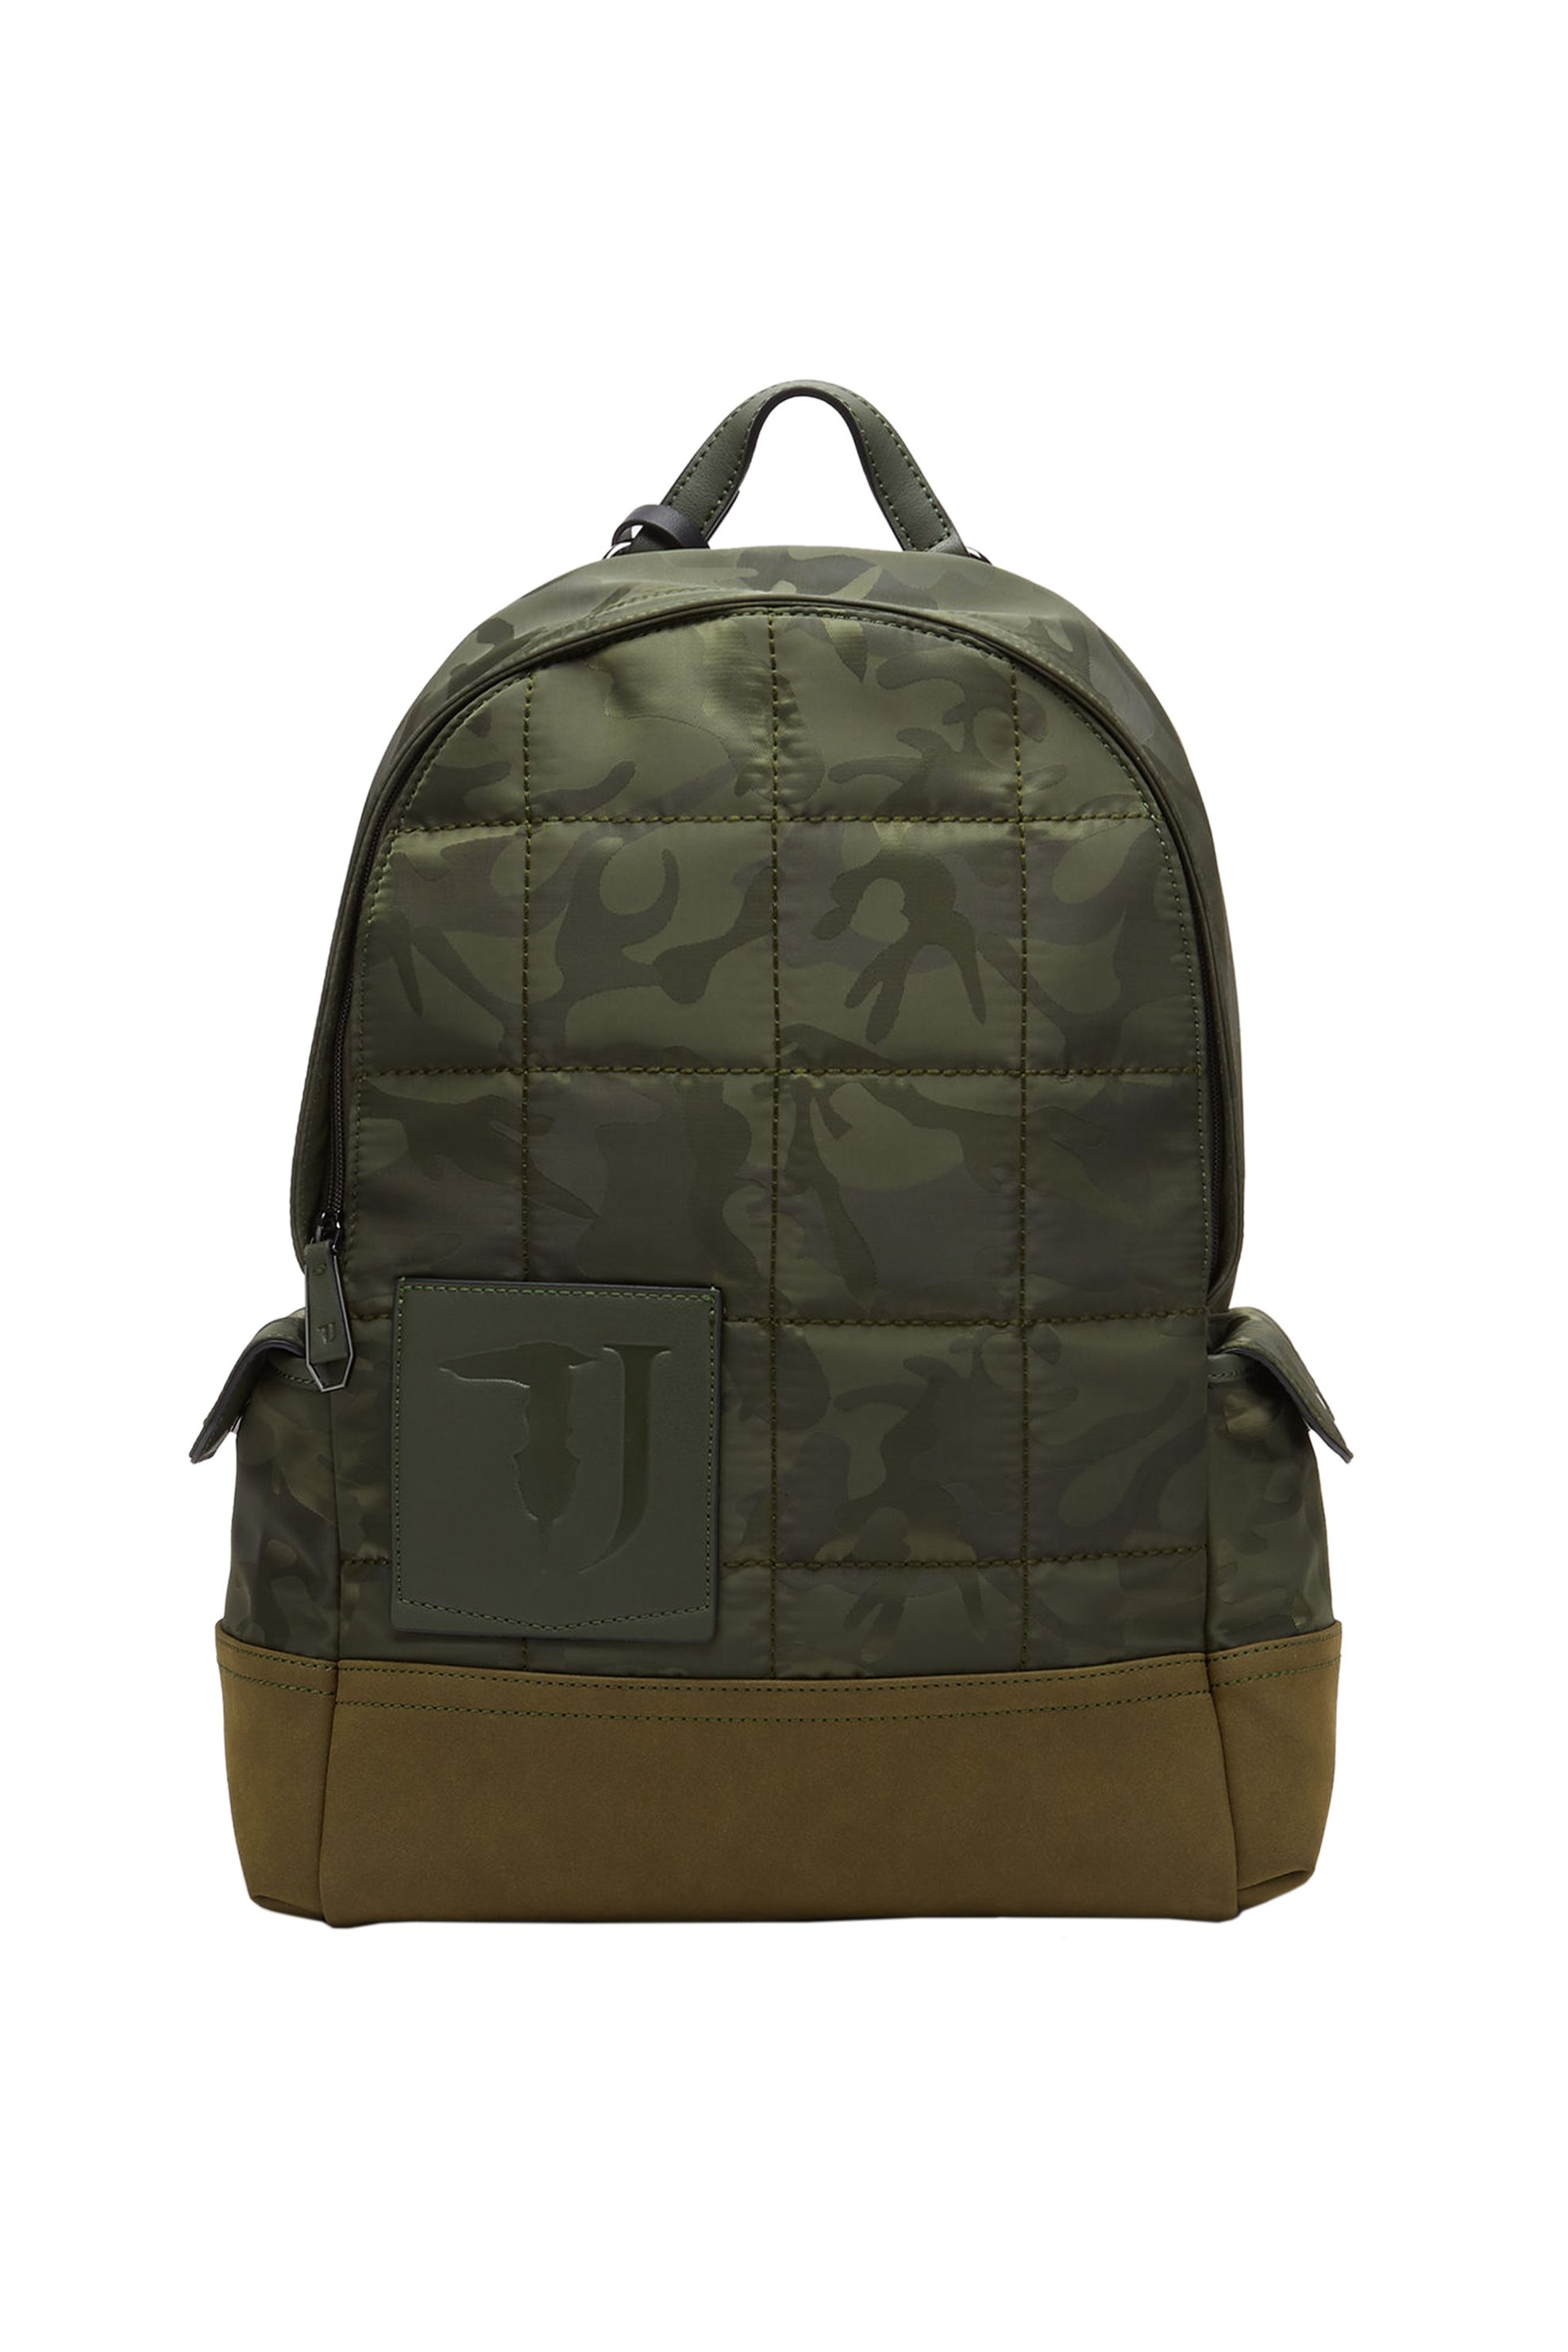 Trussardi Jeans ανδρικό backpack Ticinese camouflage - 71B00098-9Y099998 - Λαδί ανδρασ   τσαντεσ   σακίδια   backpacks